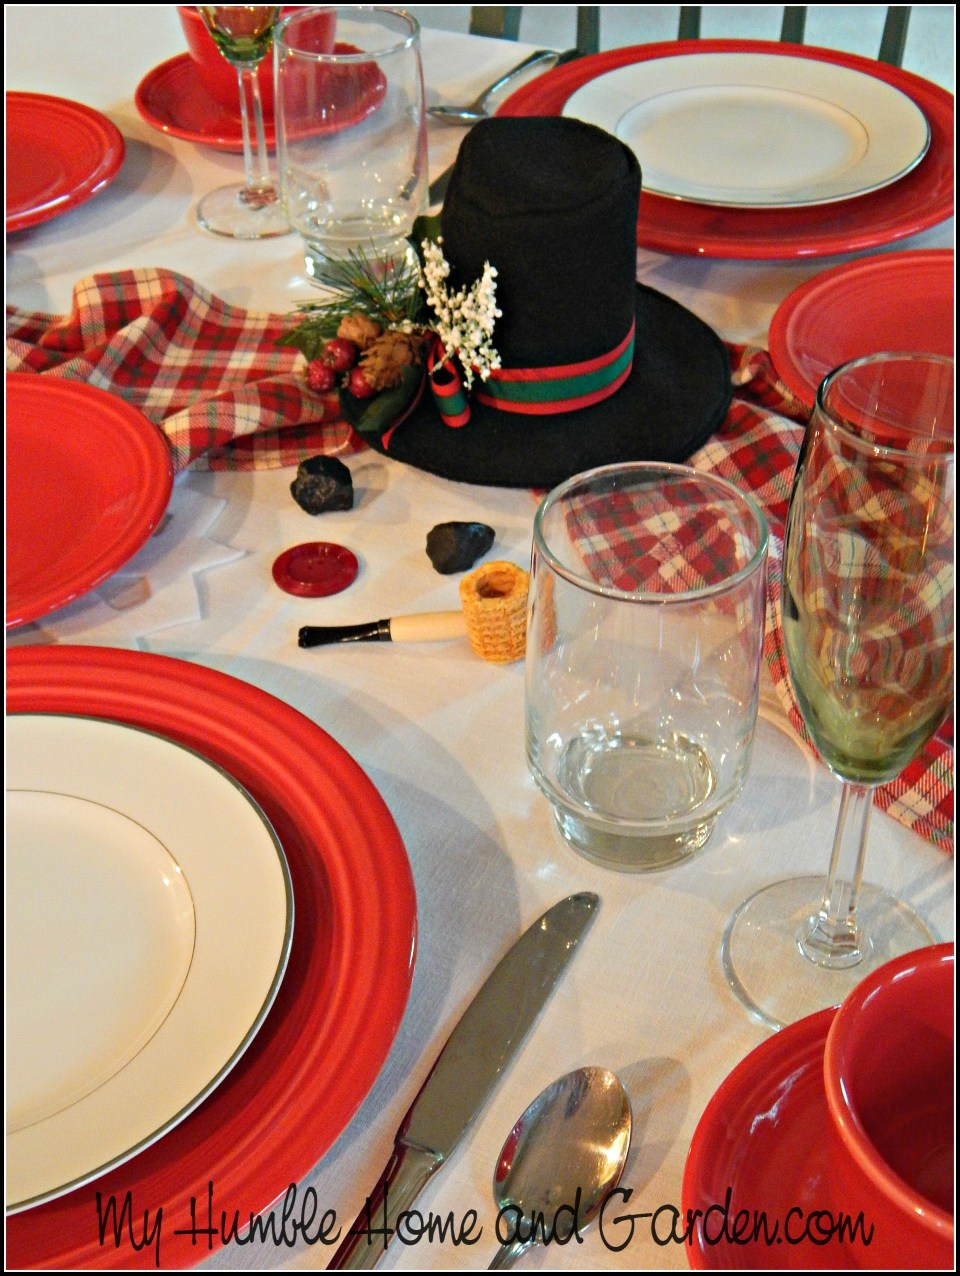 Isn't This Easy DIY Melted Snowman Tablescape Adorable?